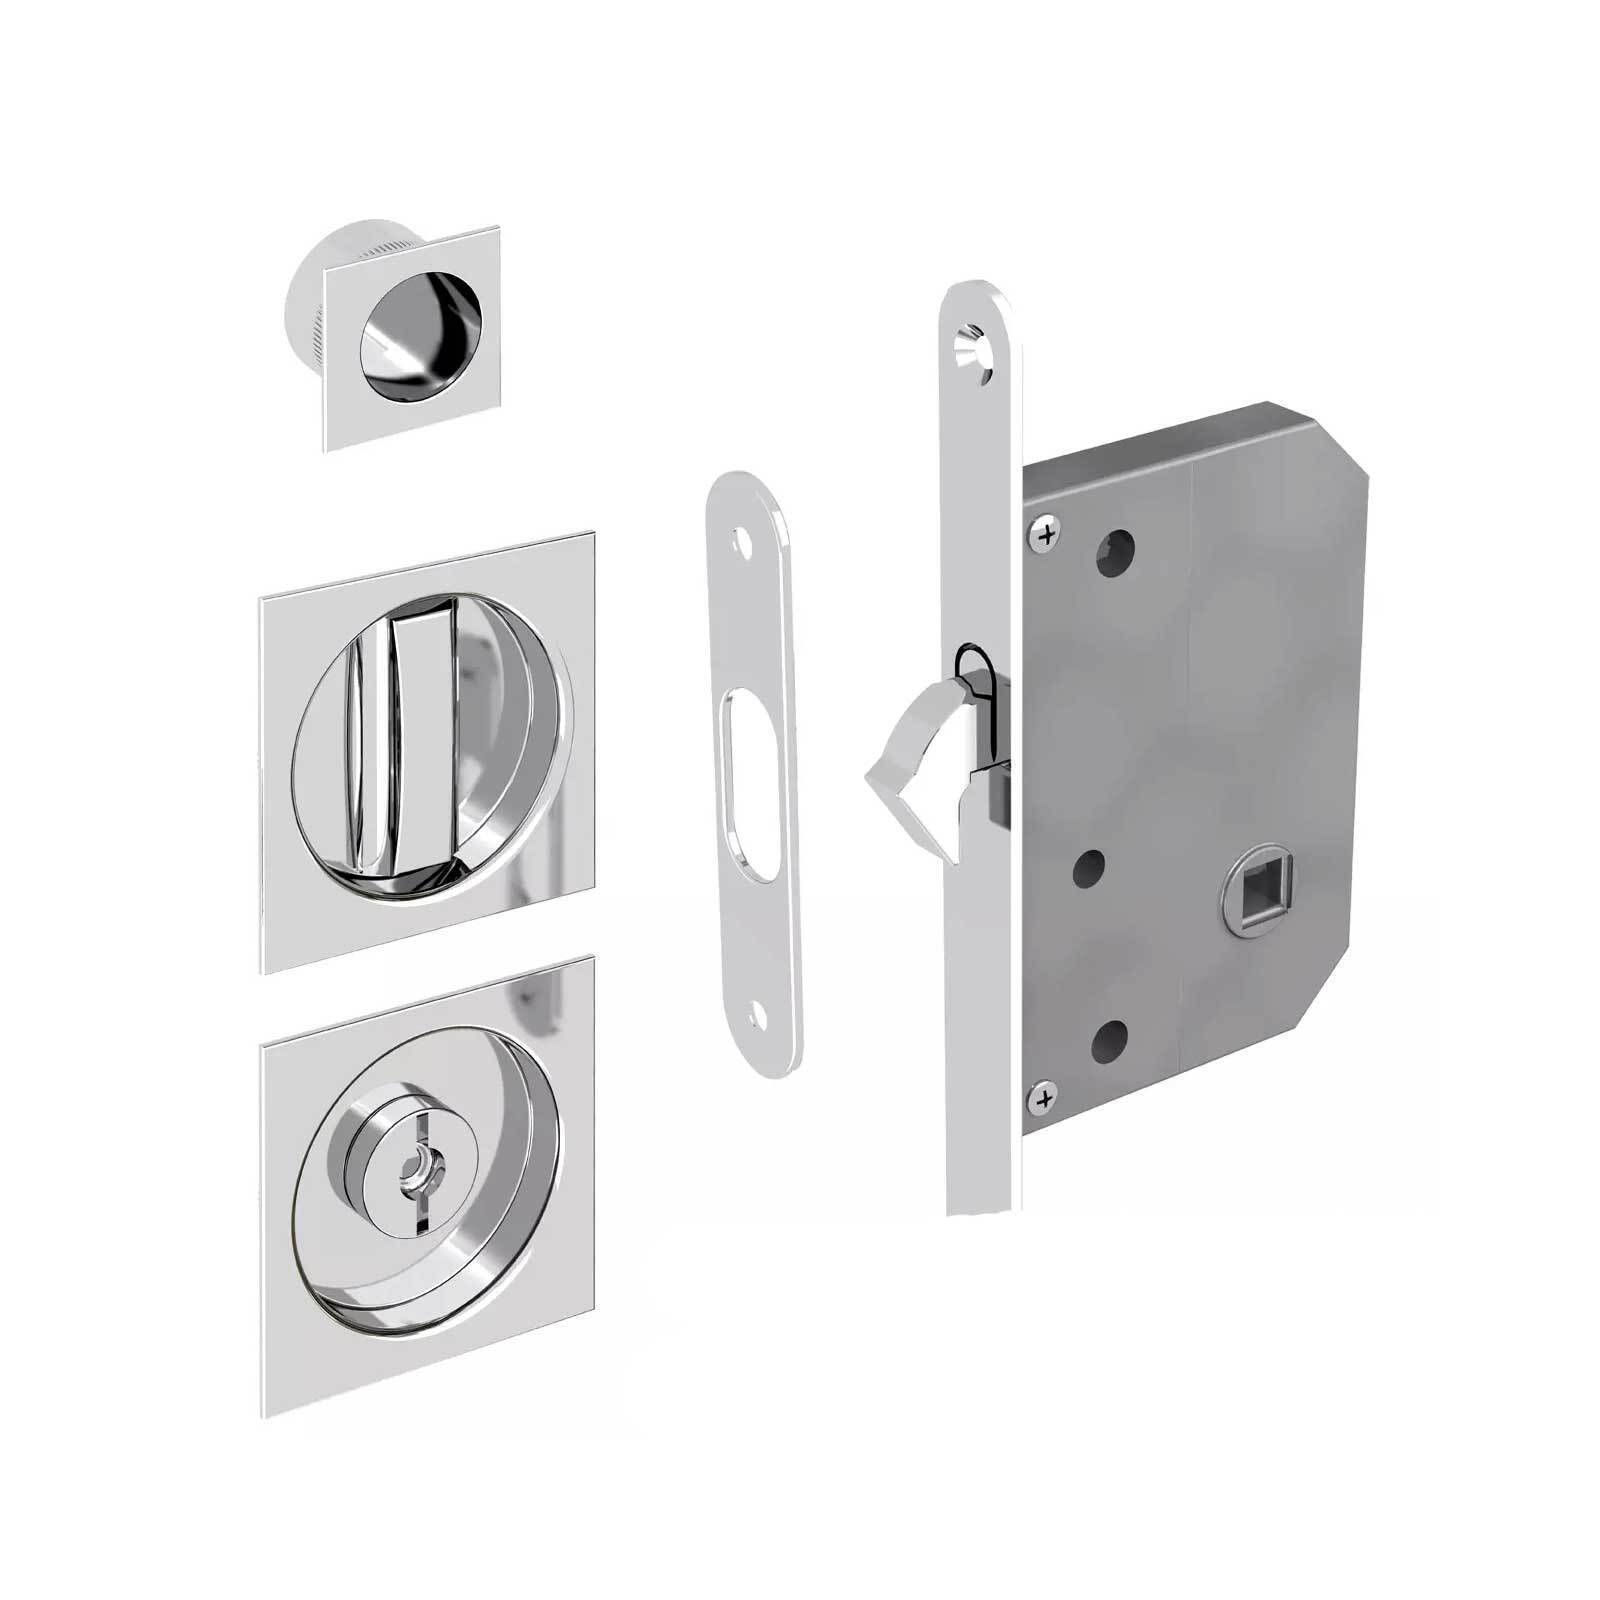 How To Open A Bedroom Door Lock: Sliding Door Lock For Bathroom Doors